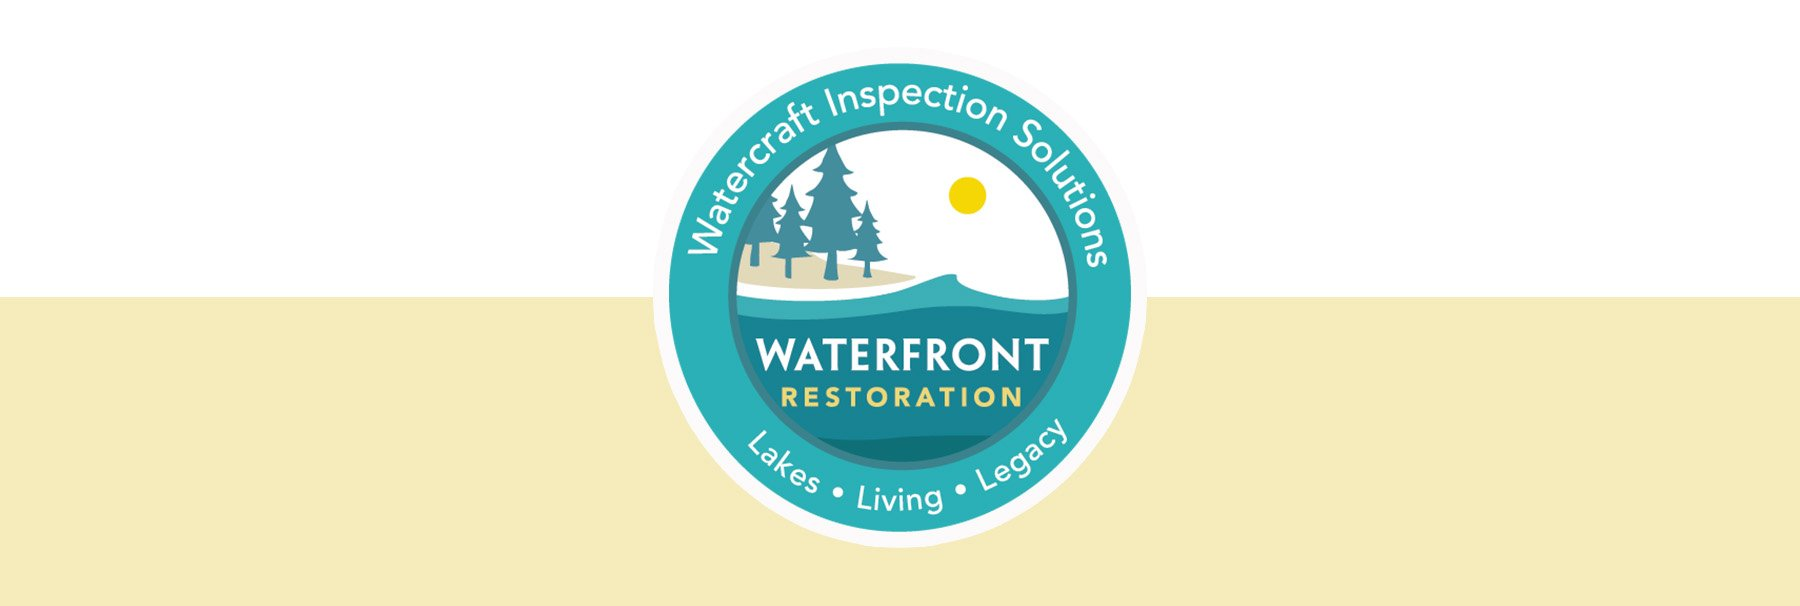 Waterfront Restoration logo